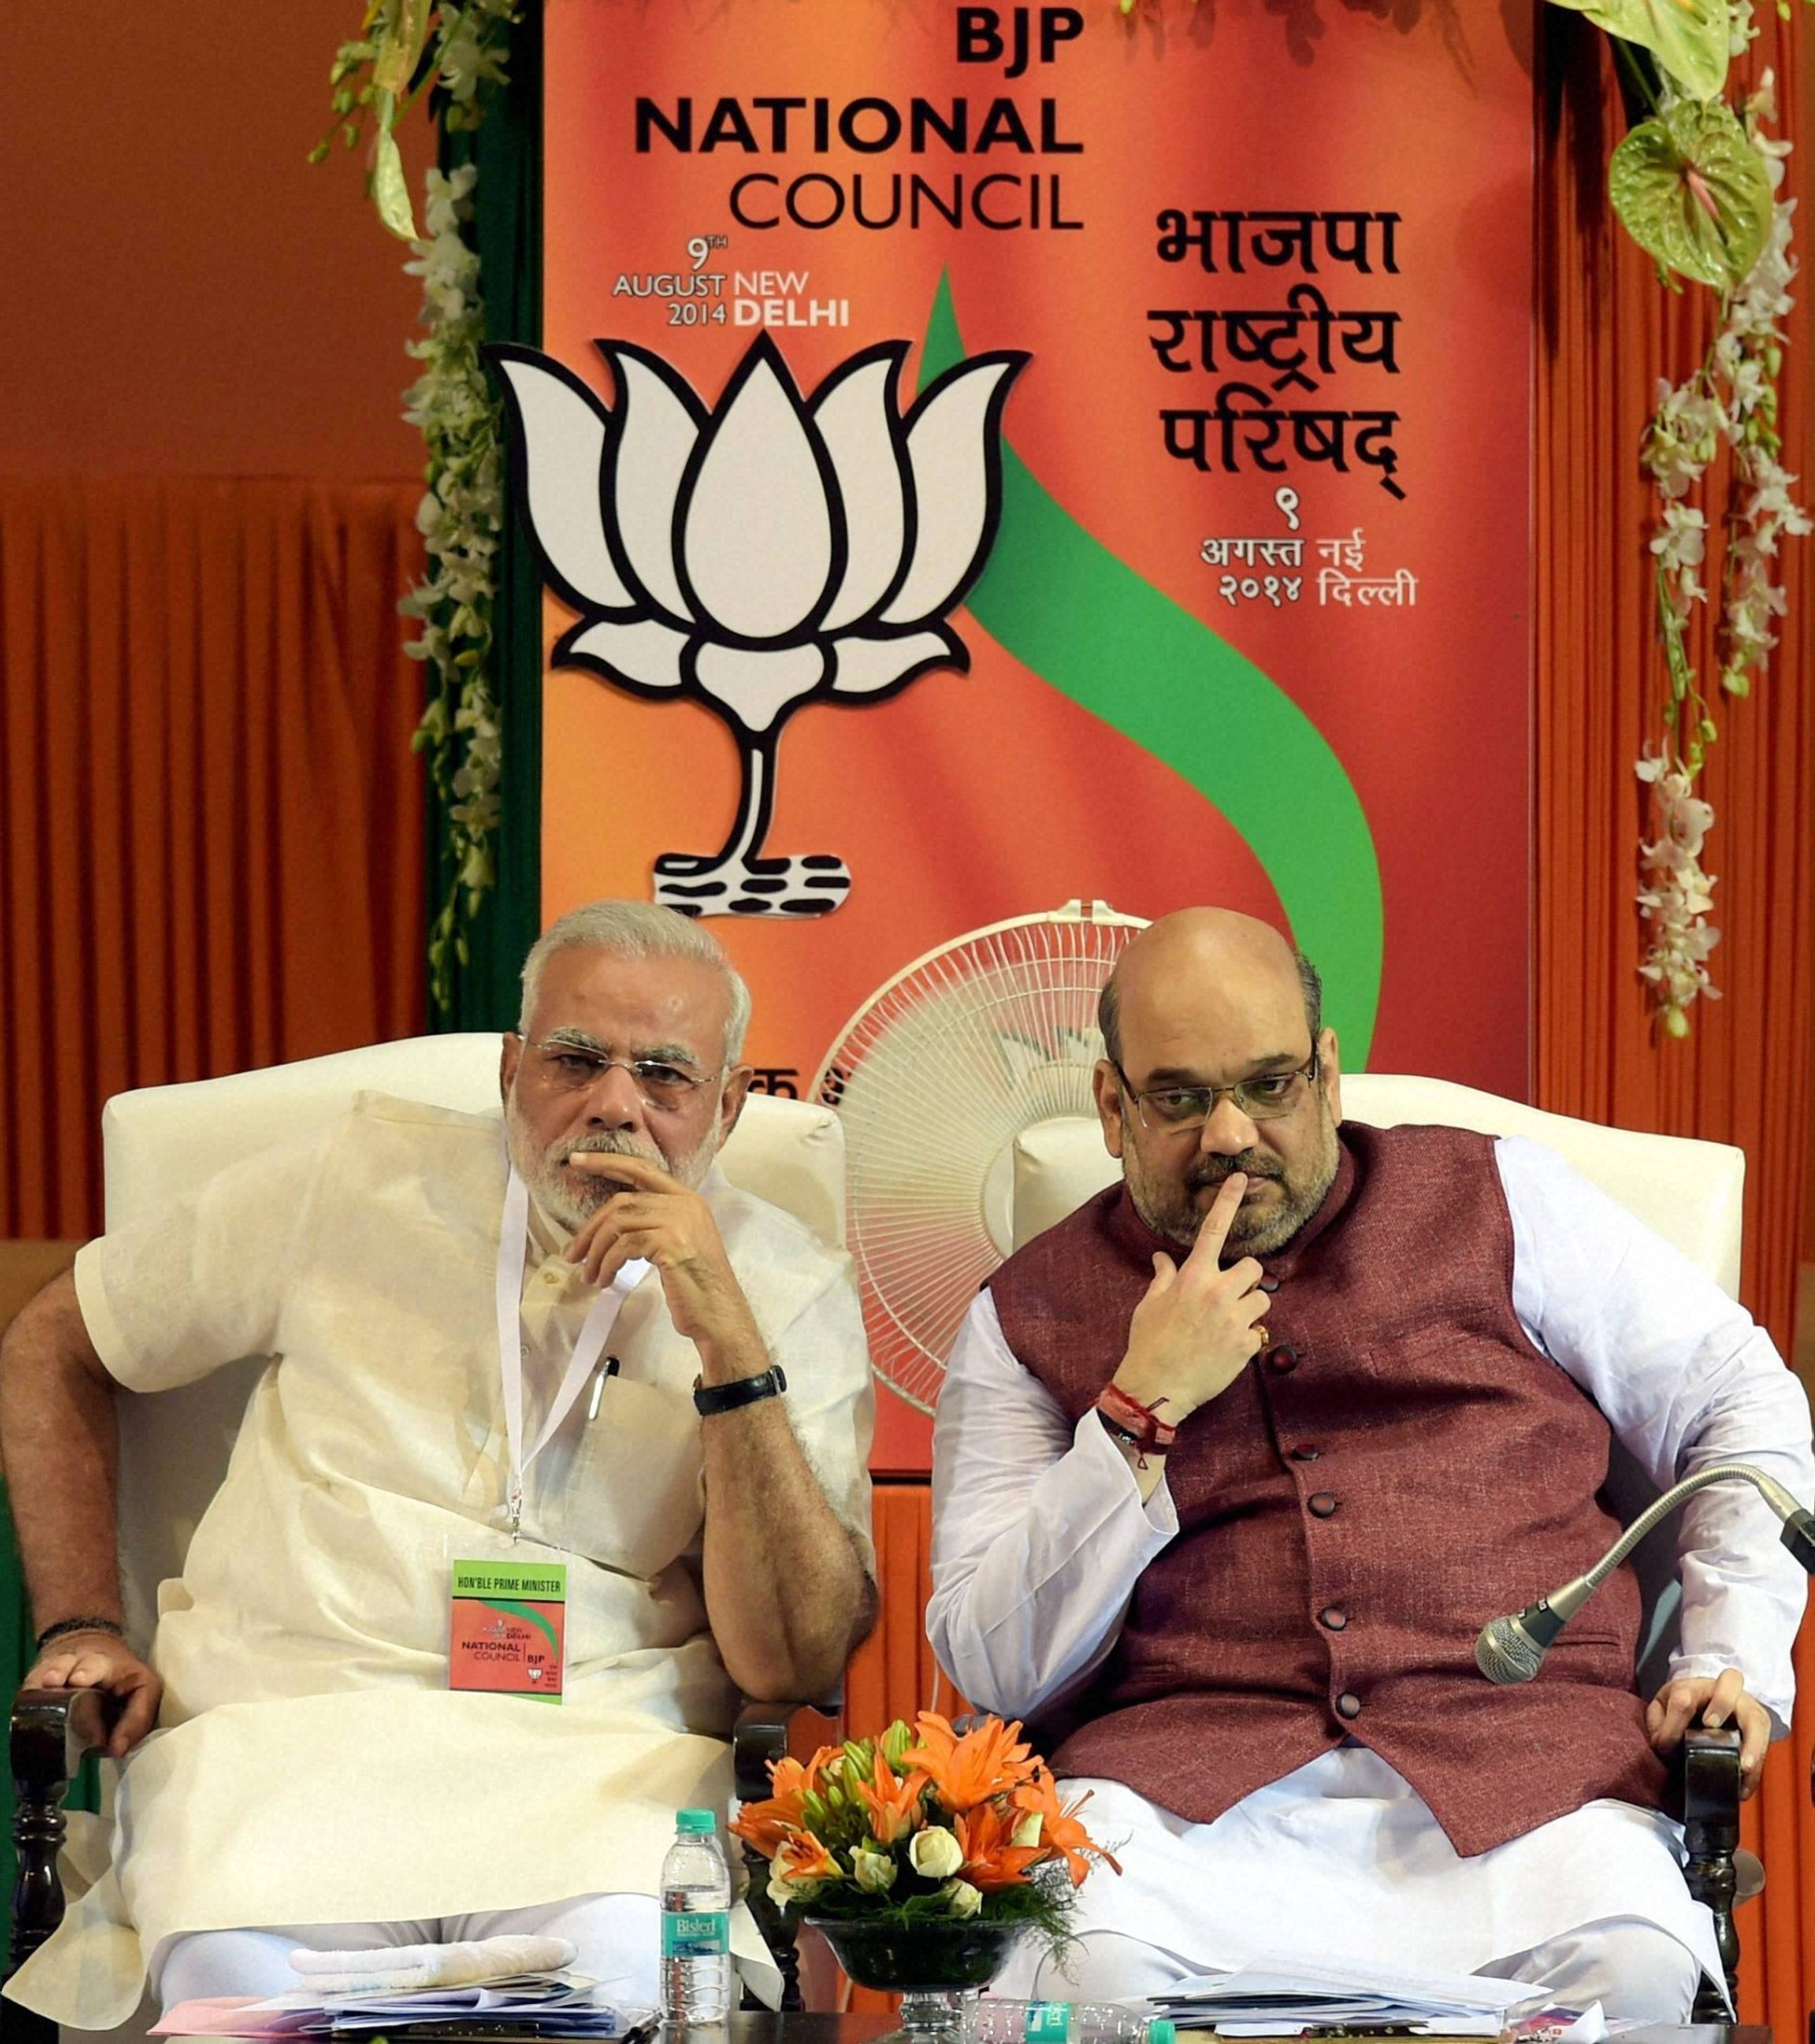 BJP National Executive will be focusing on Land Acquisition Bill mainly